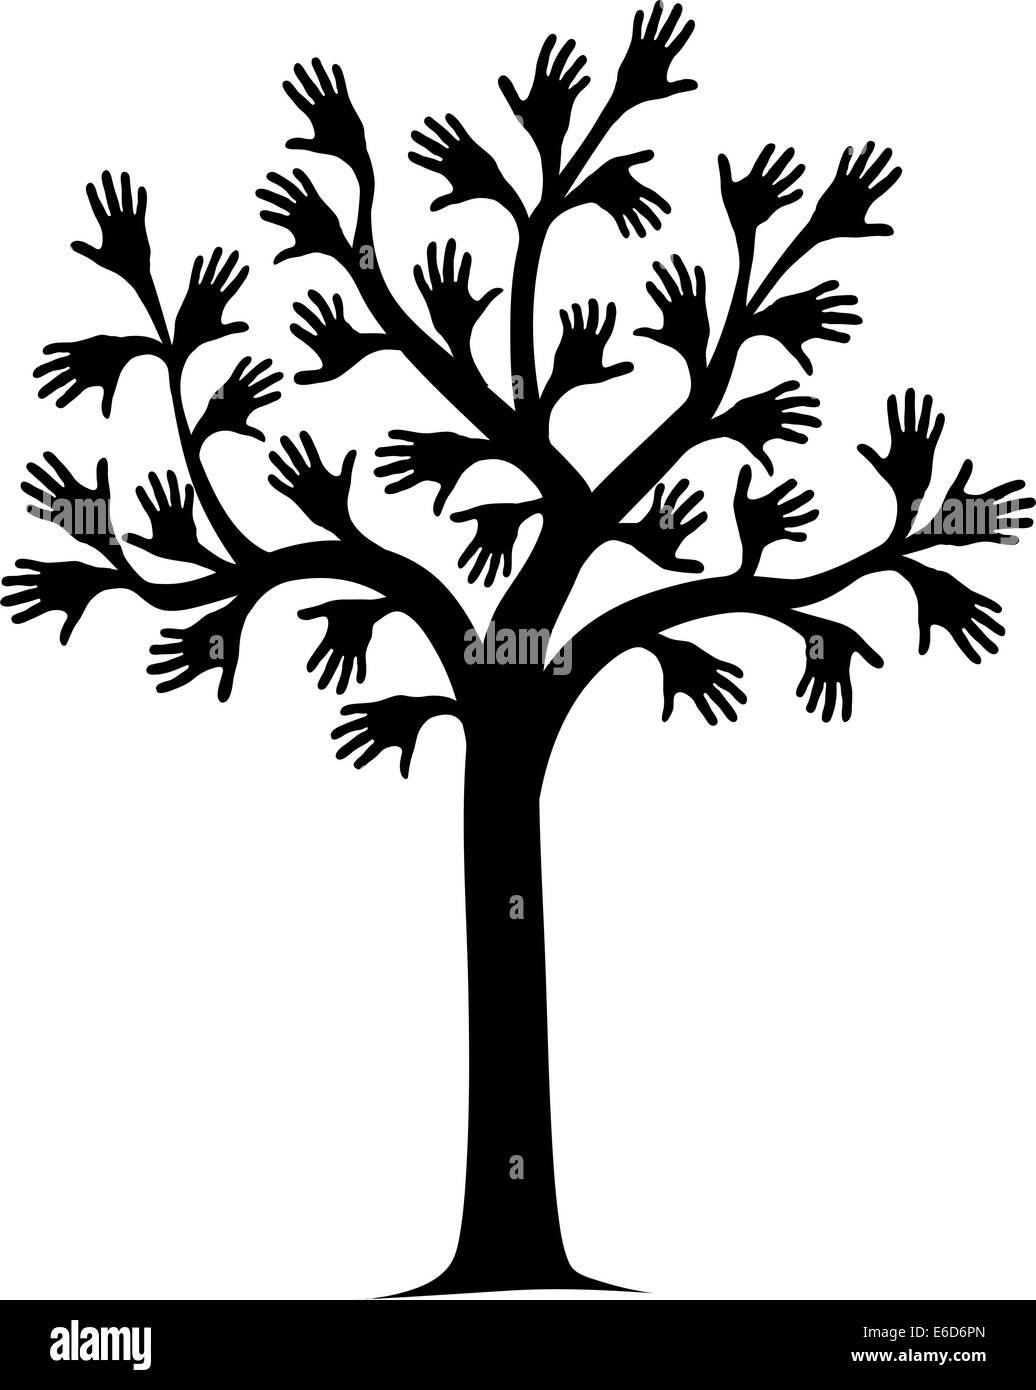 Vector illustration of a tree outline with hands for leaves Stock